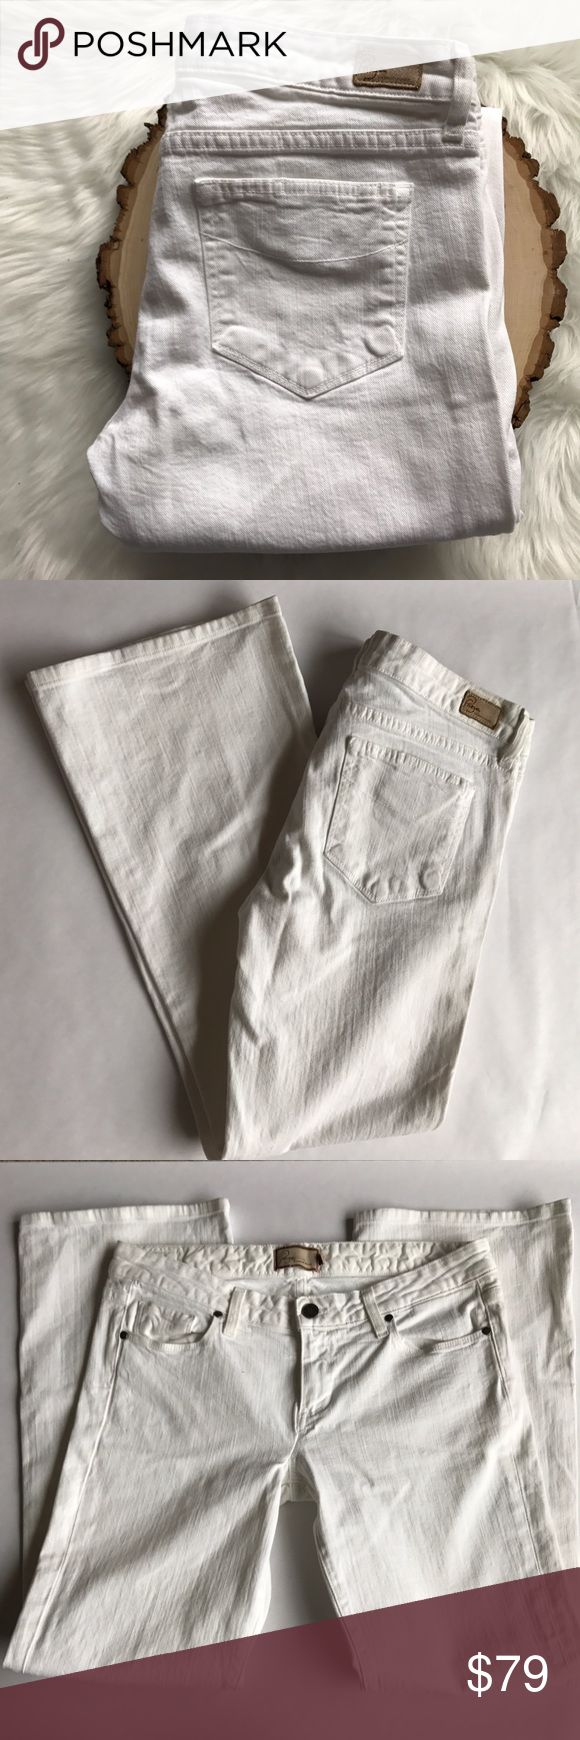 Paige Premium Laurel Canyon Low Rise Boot Cut Five pocket, zip fly jeans. 98% Cotton / 2% spandex. EUC Paige Jeans Jeans Boot Cut